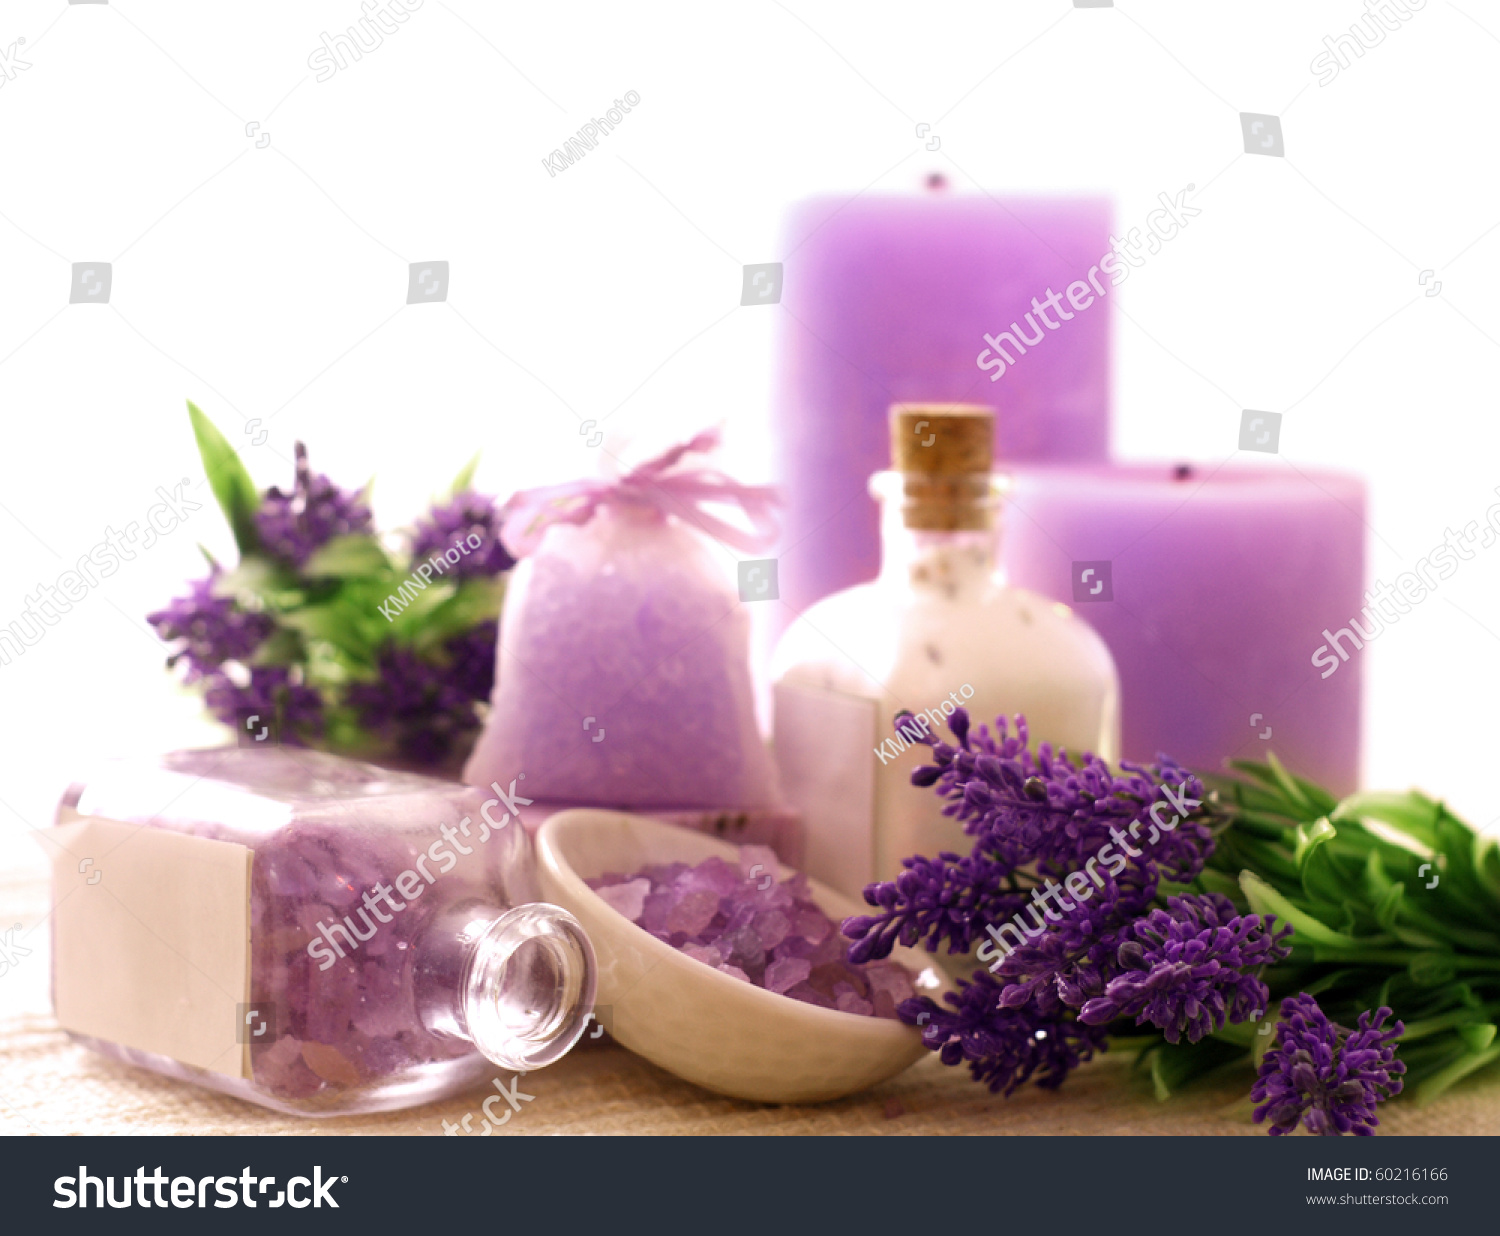 Spa beauty treatment products stock photo 60216166 for A trial beauty treatment salon